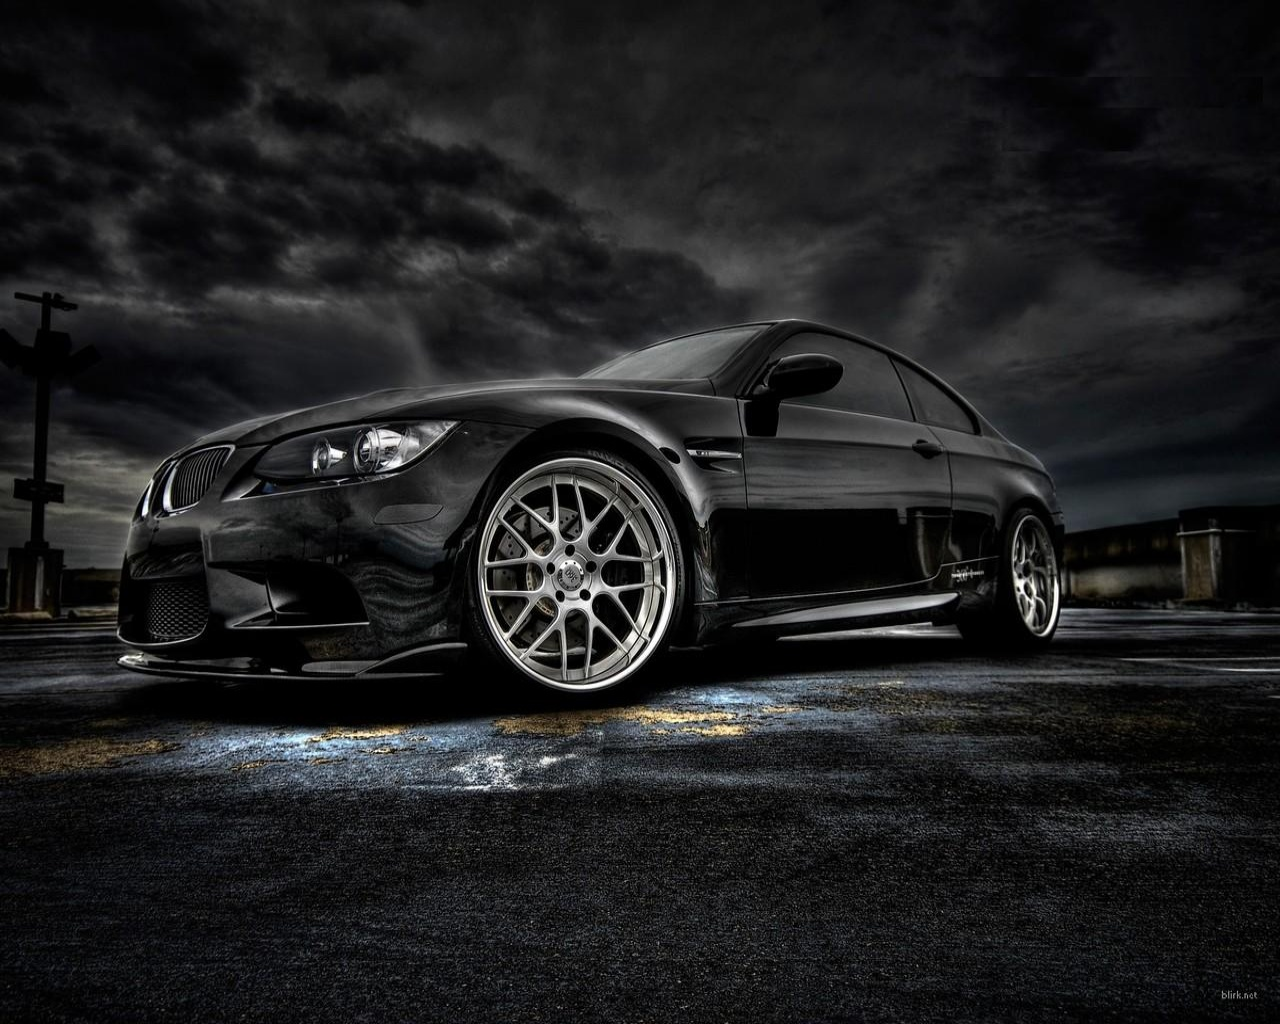 Bmw M3 Cars Wallpapers And Images For Mobile Phone Mobile Wallpaper